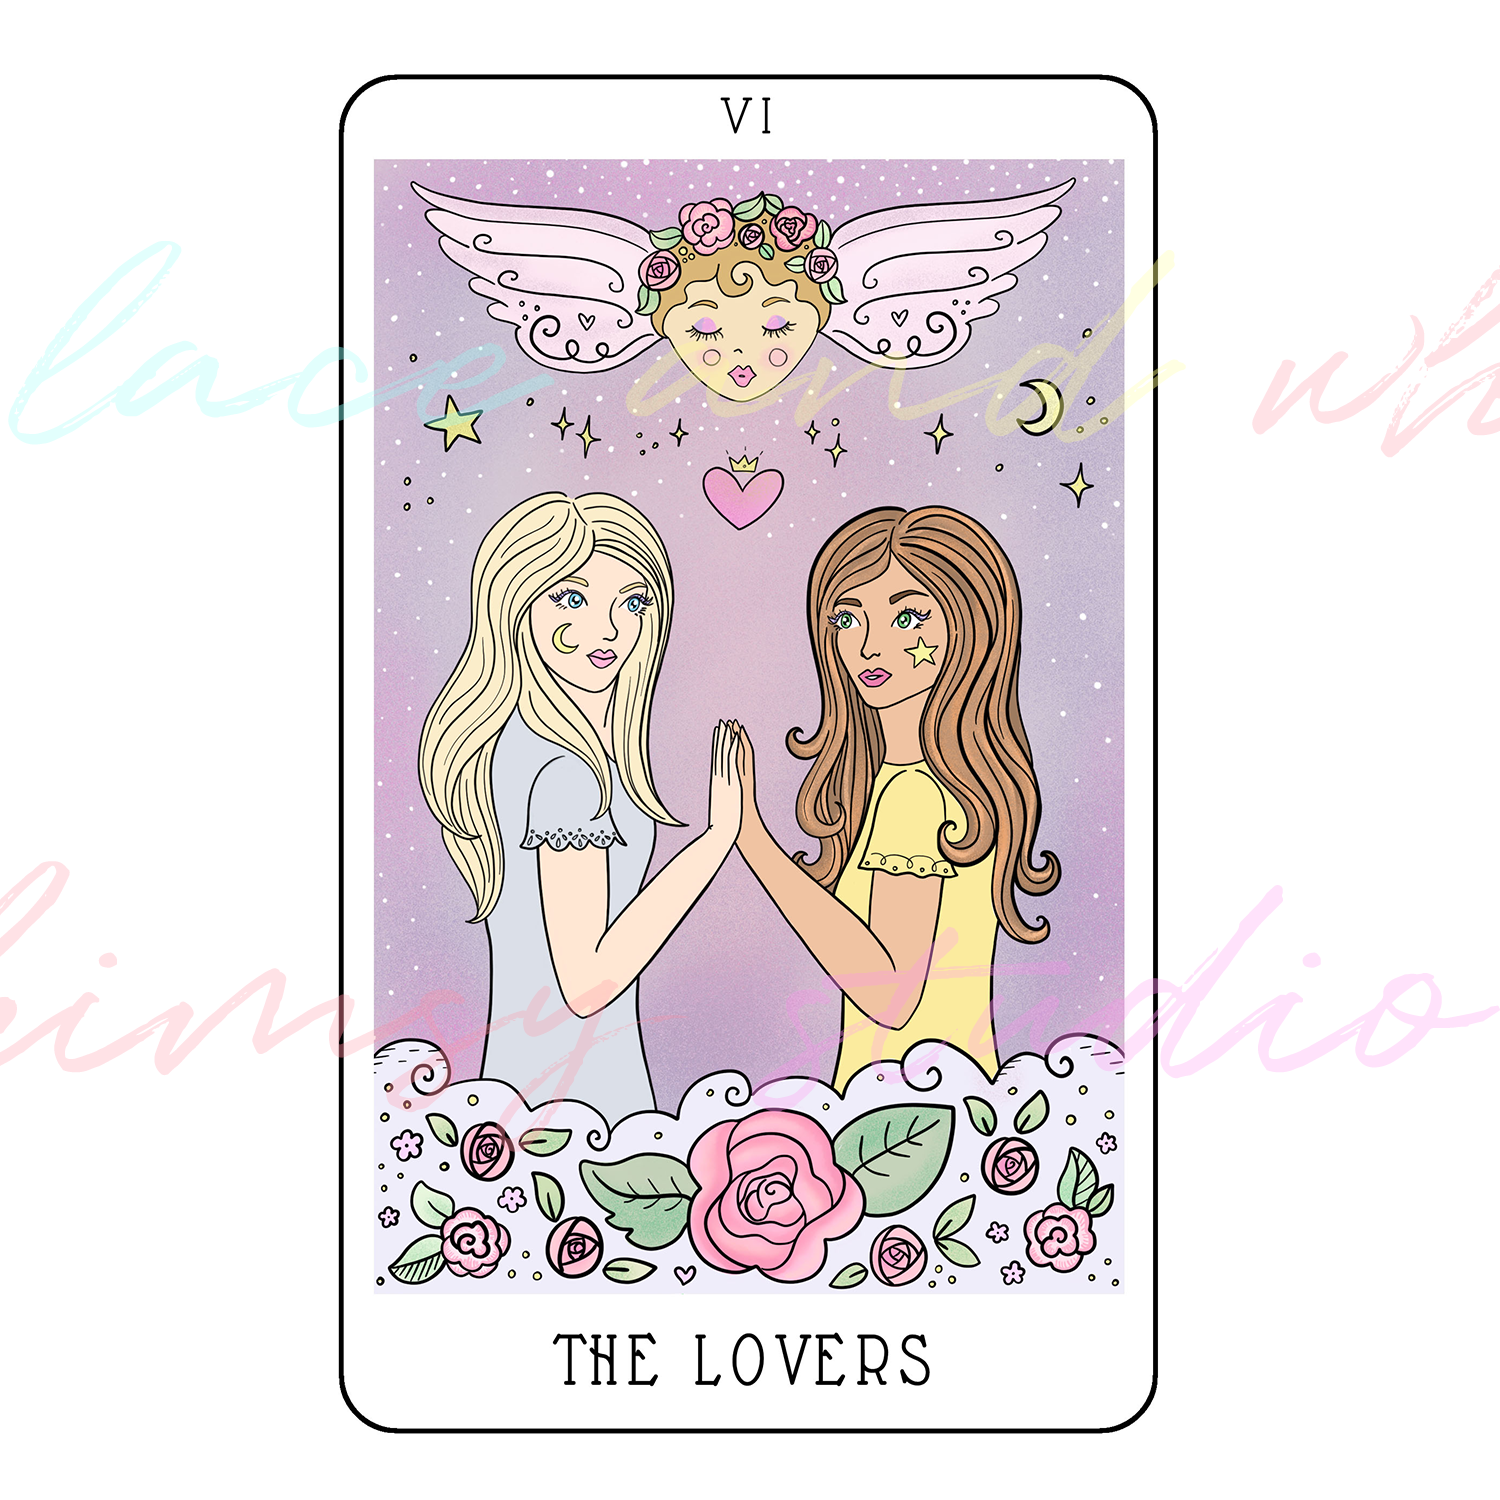 tarot-cards-illustration-series-2018-laceandwhimsy-kathy-d-clark-The-Lovers.png